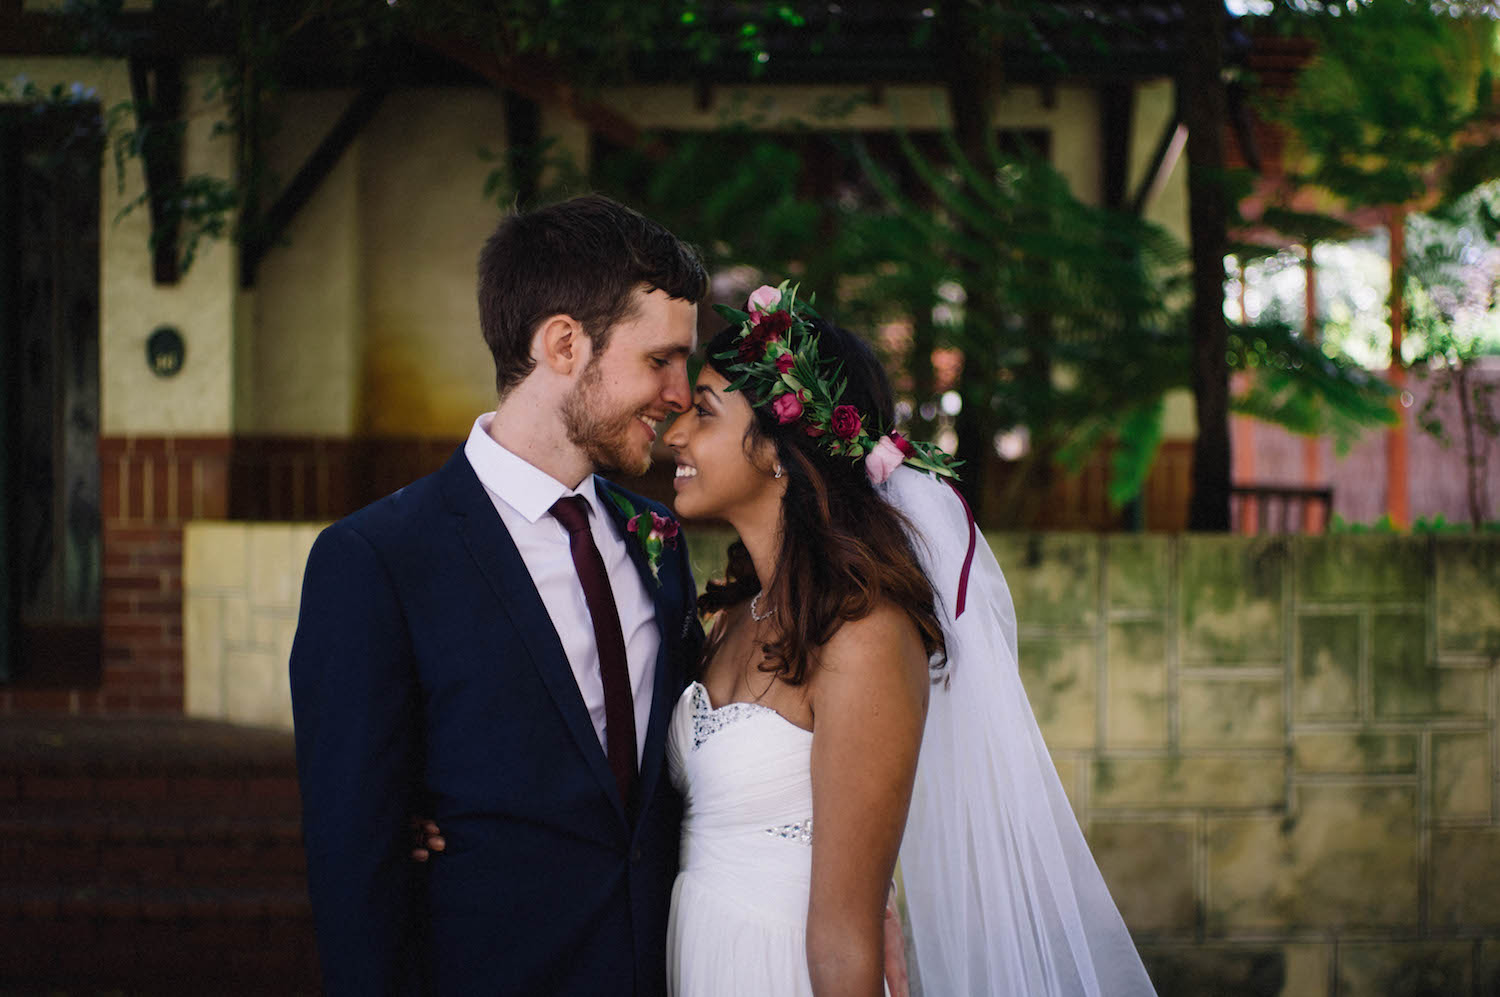 A bride & groom share a moment in Subiaco's Suburbs, photographed by Rhianna May Wedding Photographer.